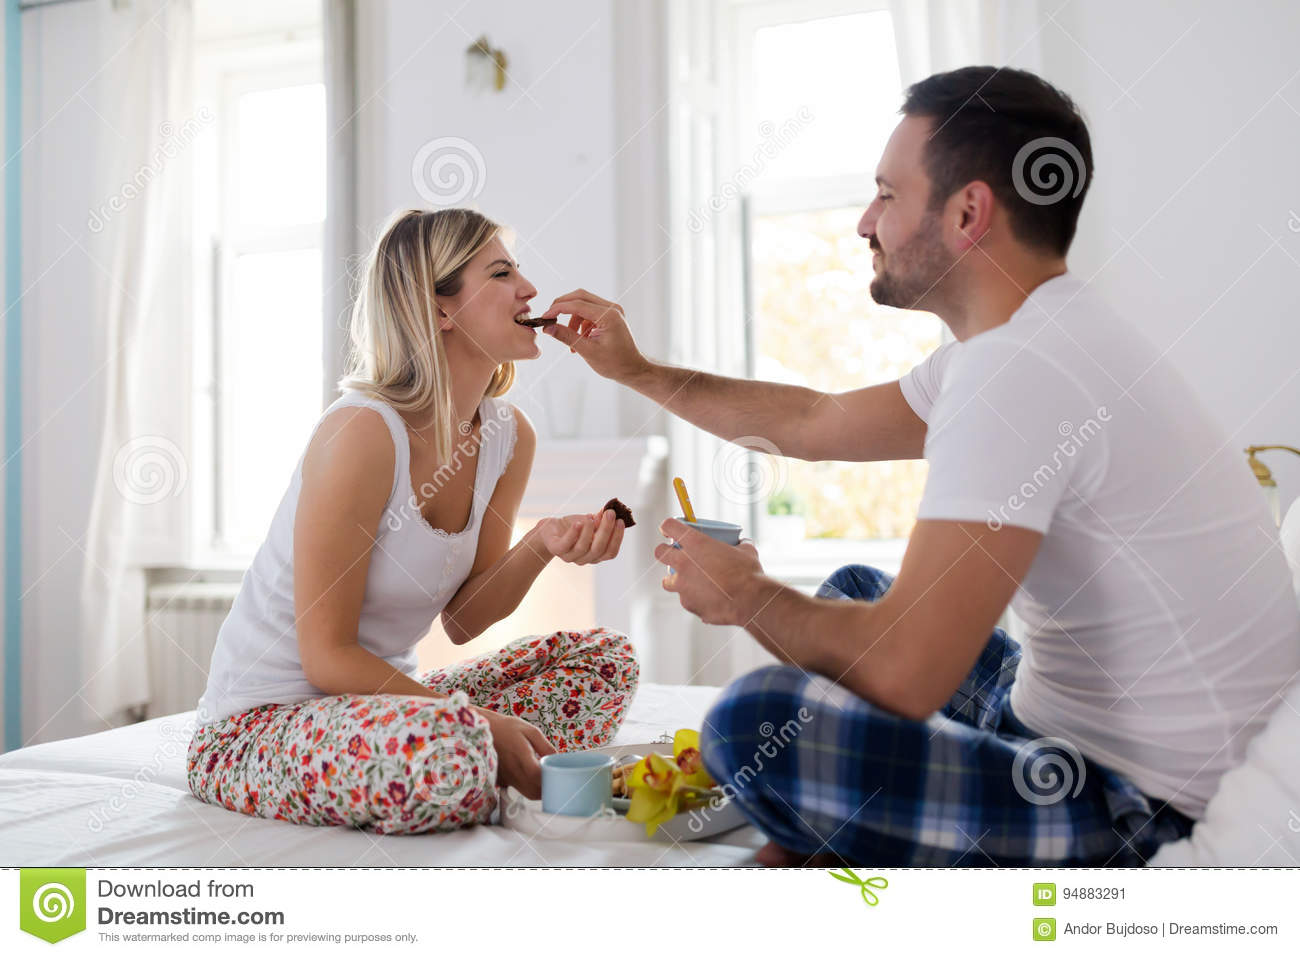 Dating Stock Photos And Images - RF